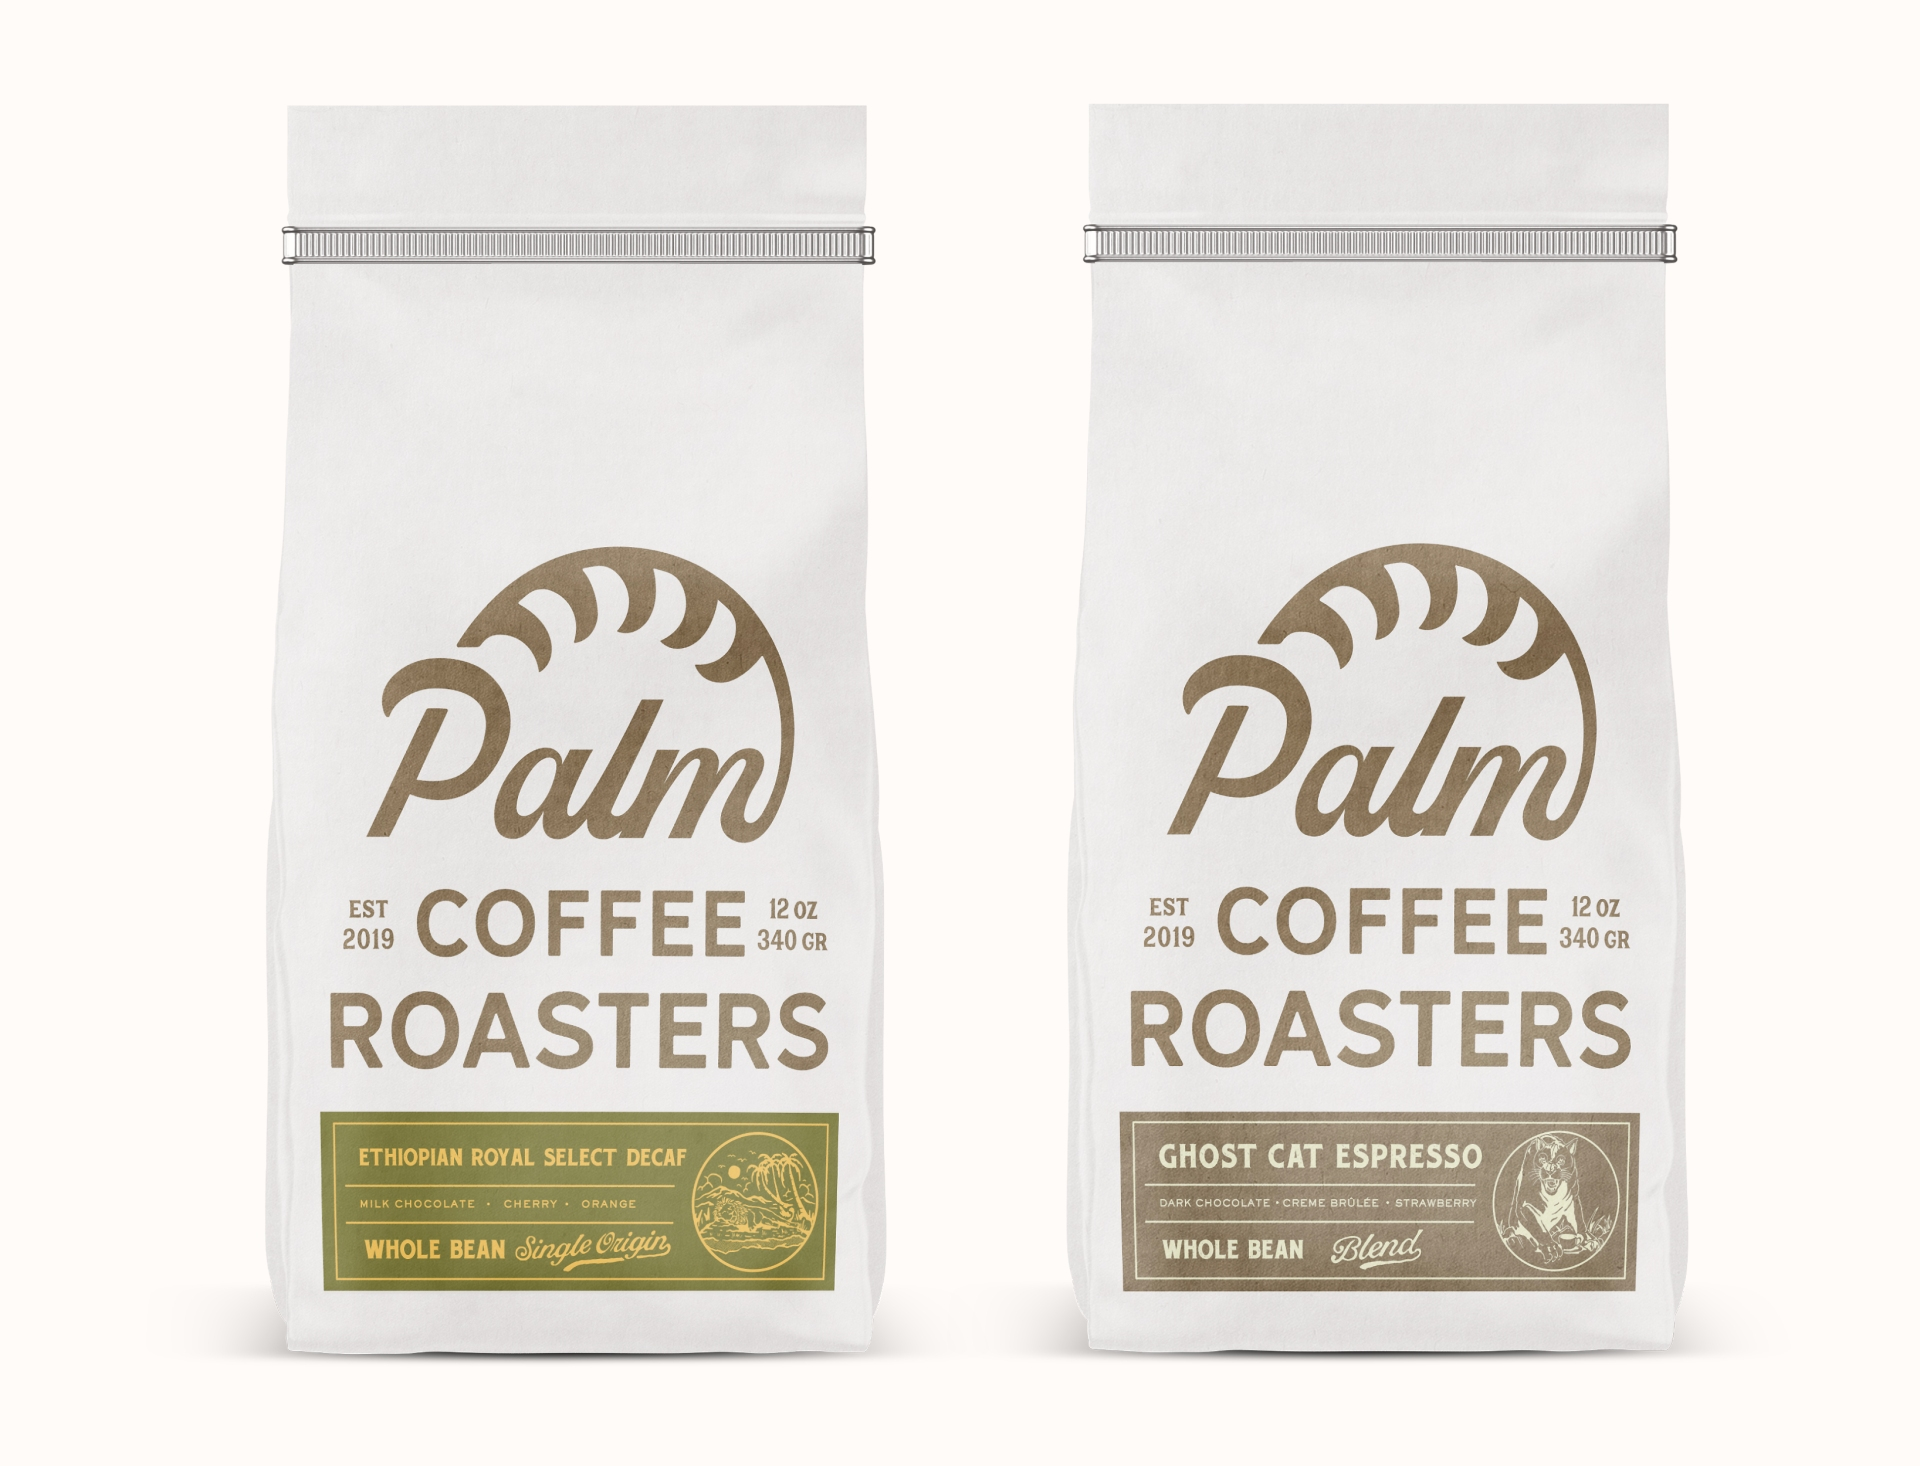 palm-branding-packaging-coffee-minimal-design-graphic-florida-hollywood-espresso-decaf-12-oz-agency-zeki-michael-freelance.jpg